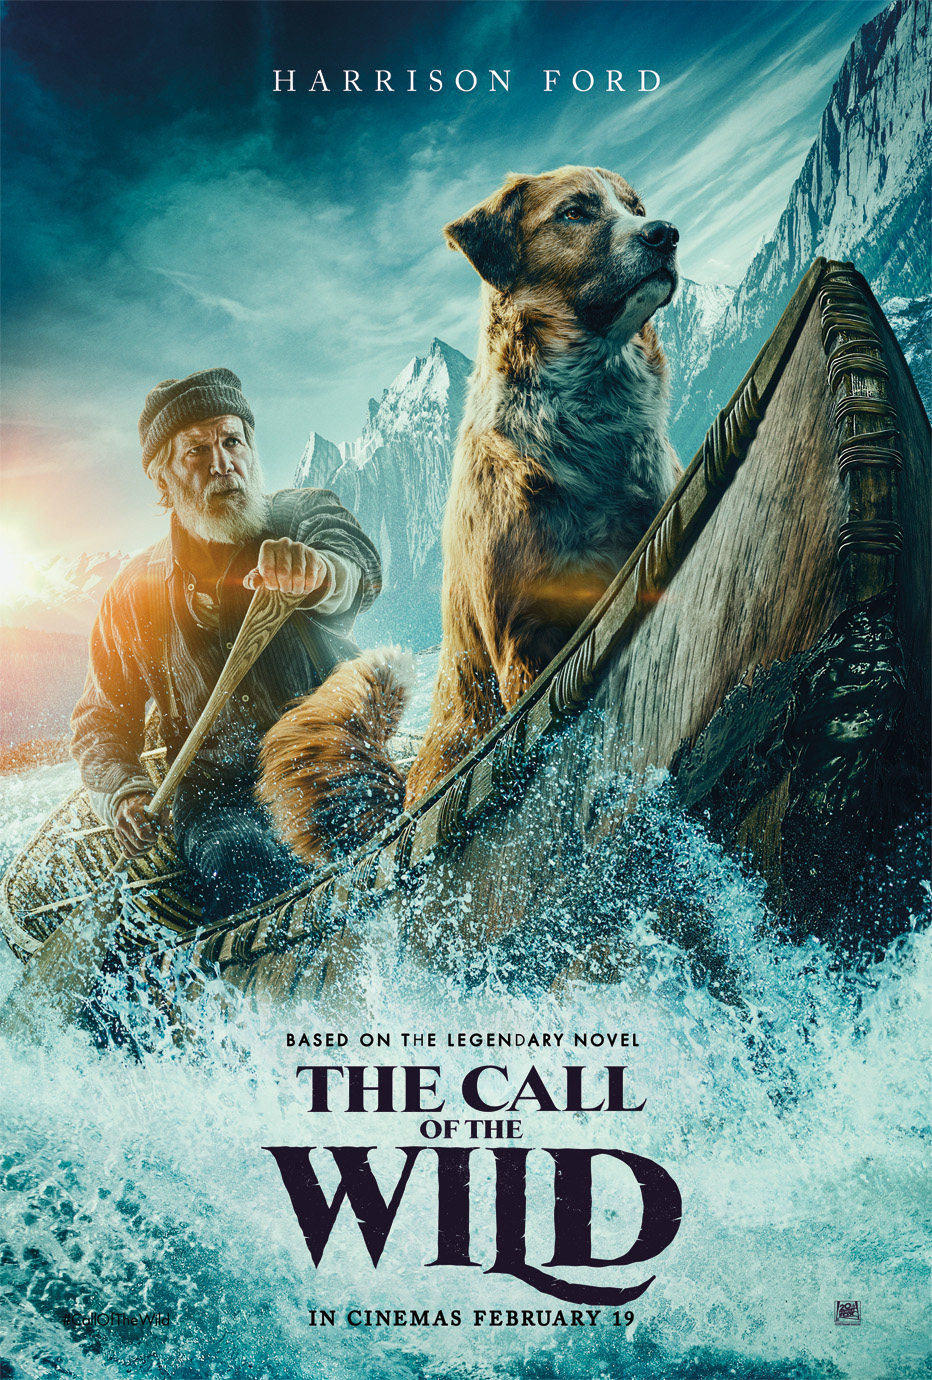 The Call of The Wild - Payoff Poster